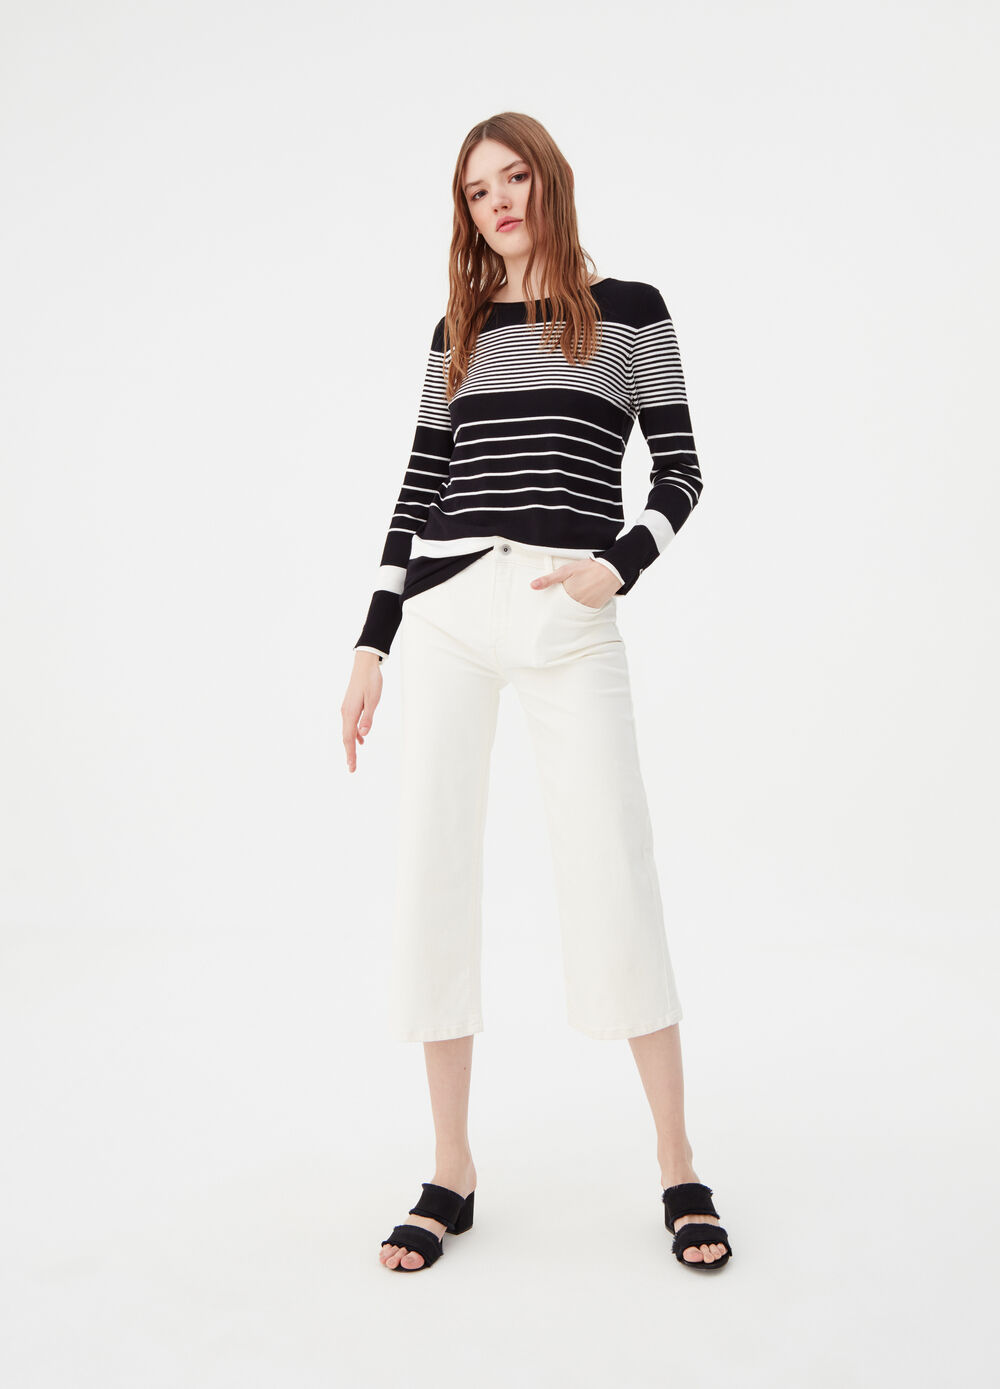 Striped knit top with buttons